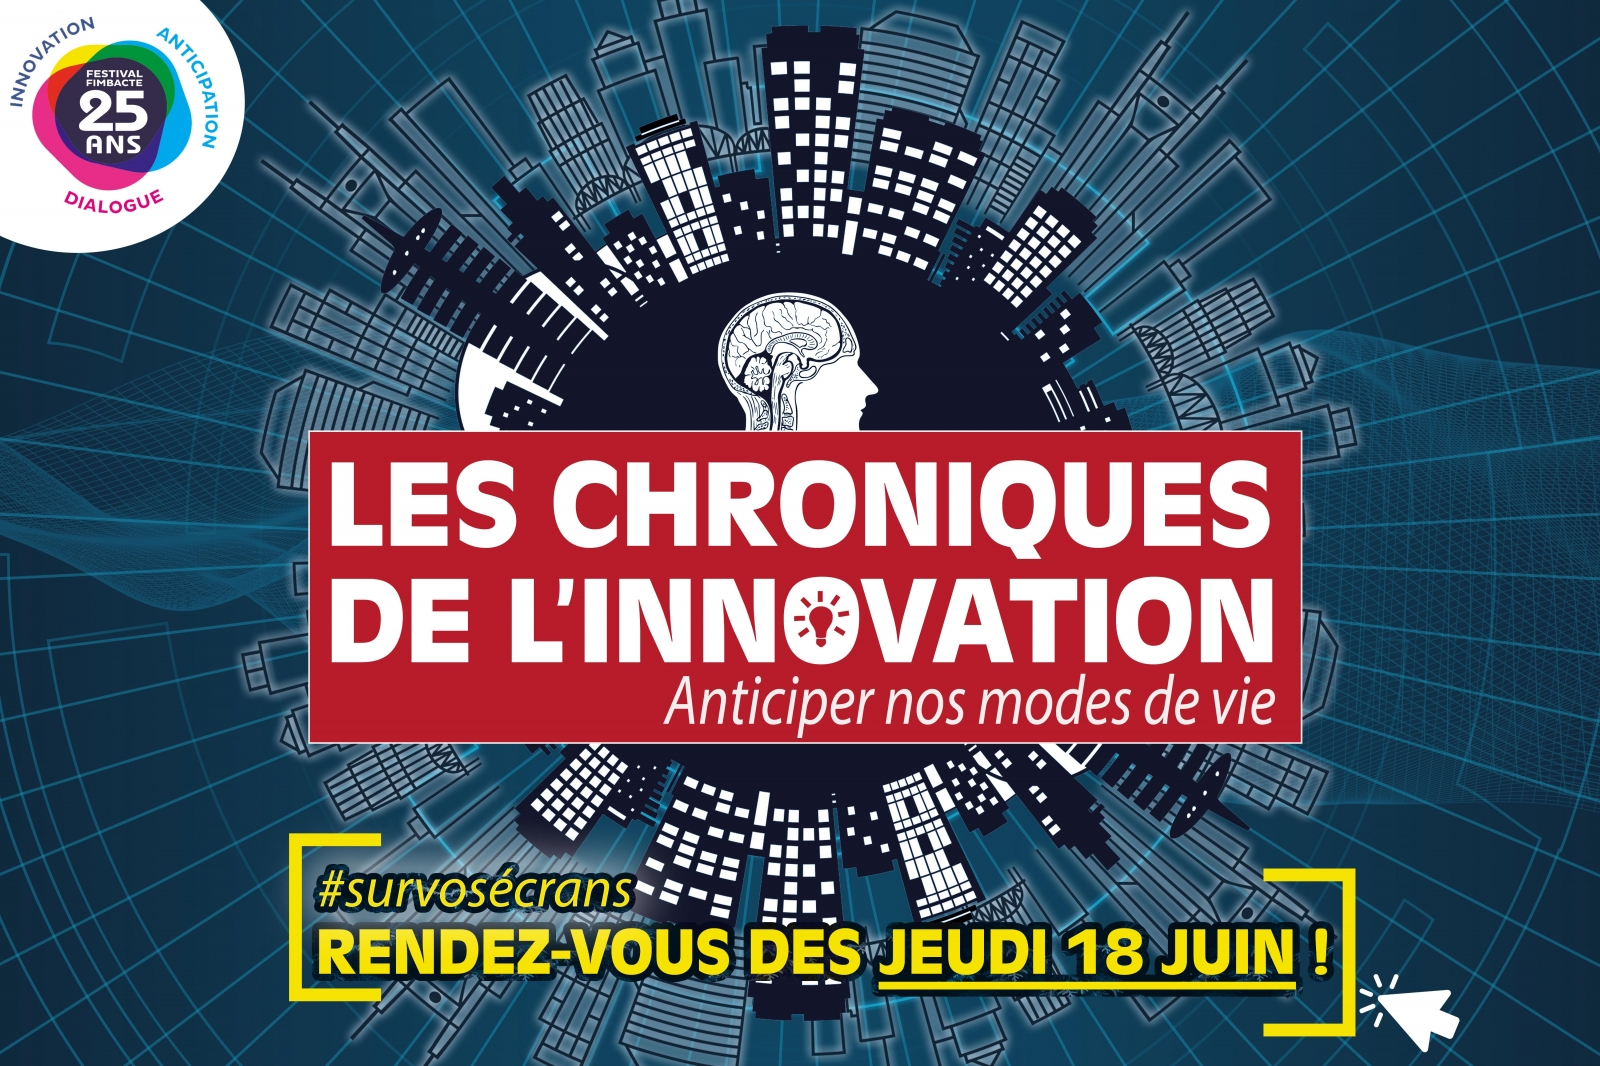 photo Les chroniques de l'innovation - Anticiper nos modes de vie